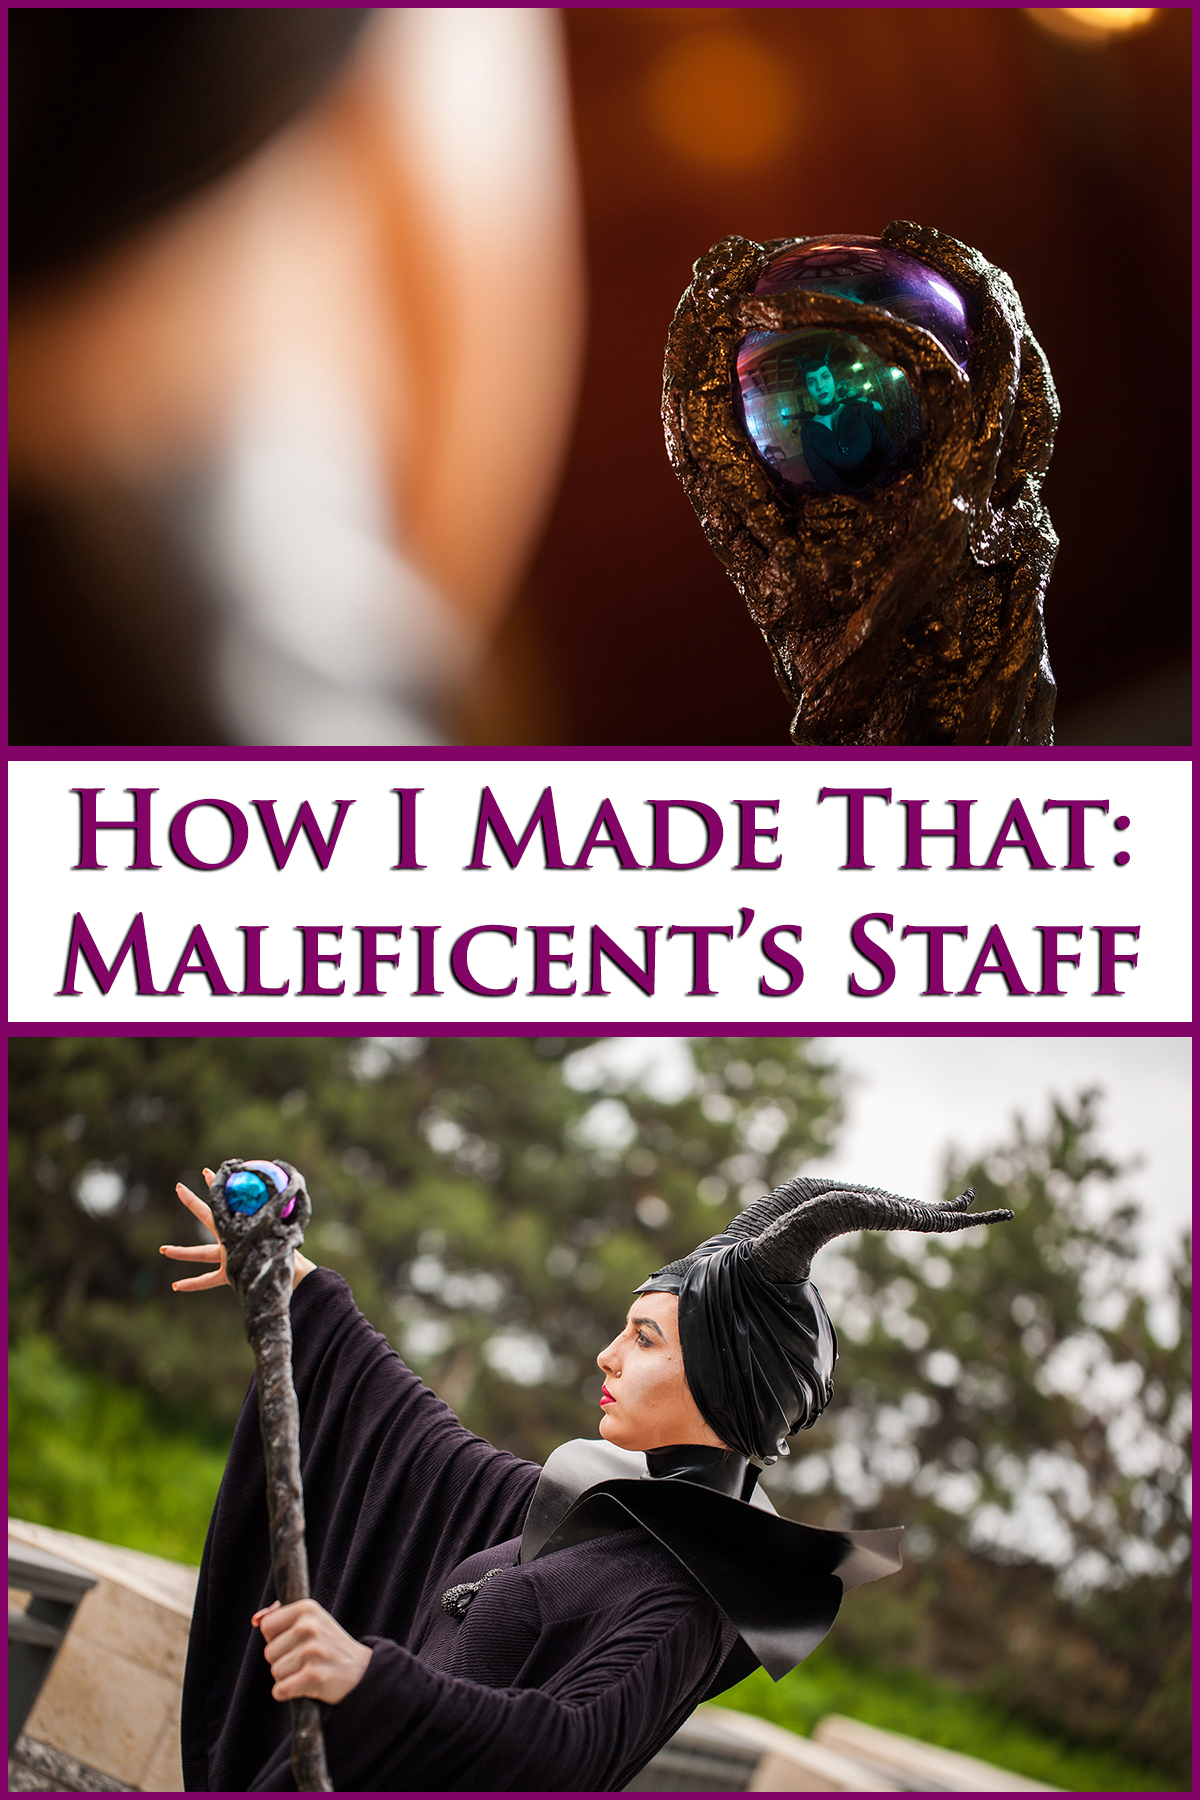 Two photos of a Maleficent cosplayer. Burgundy text overlay says how I made that: Maleficent's staff.